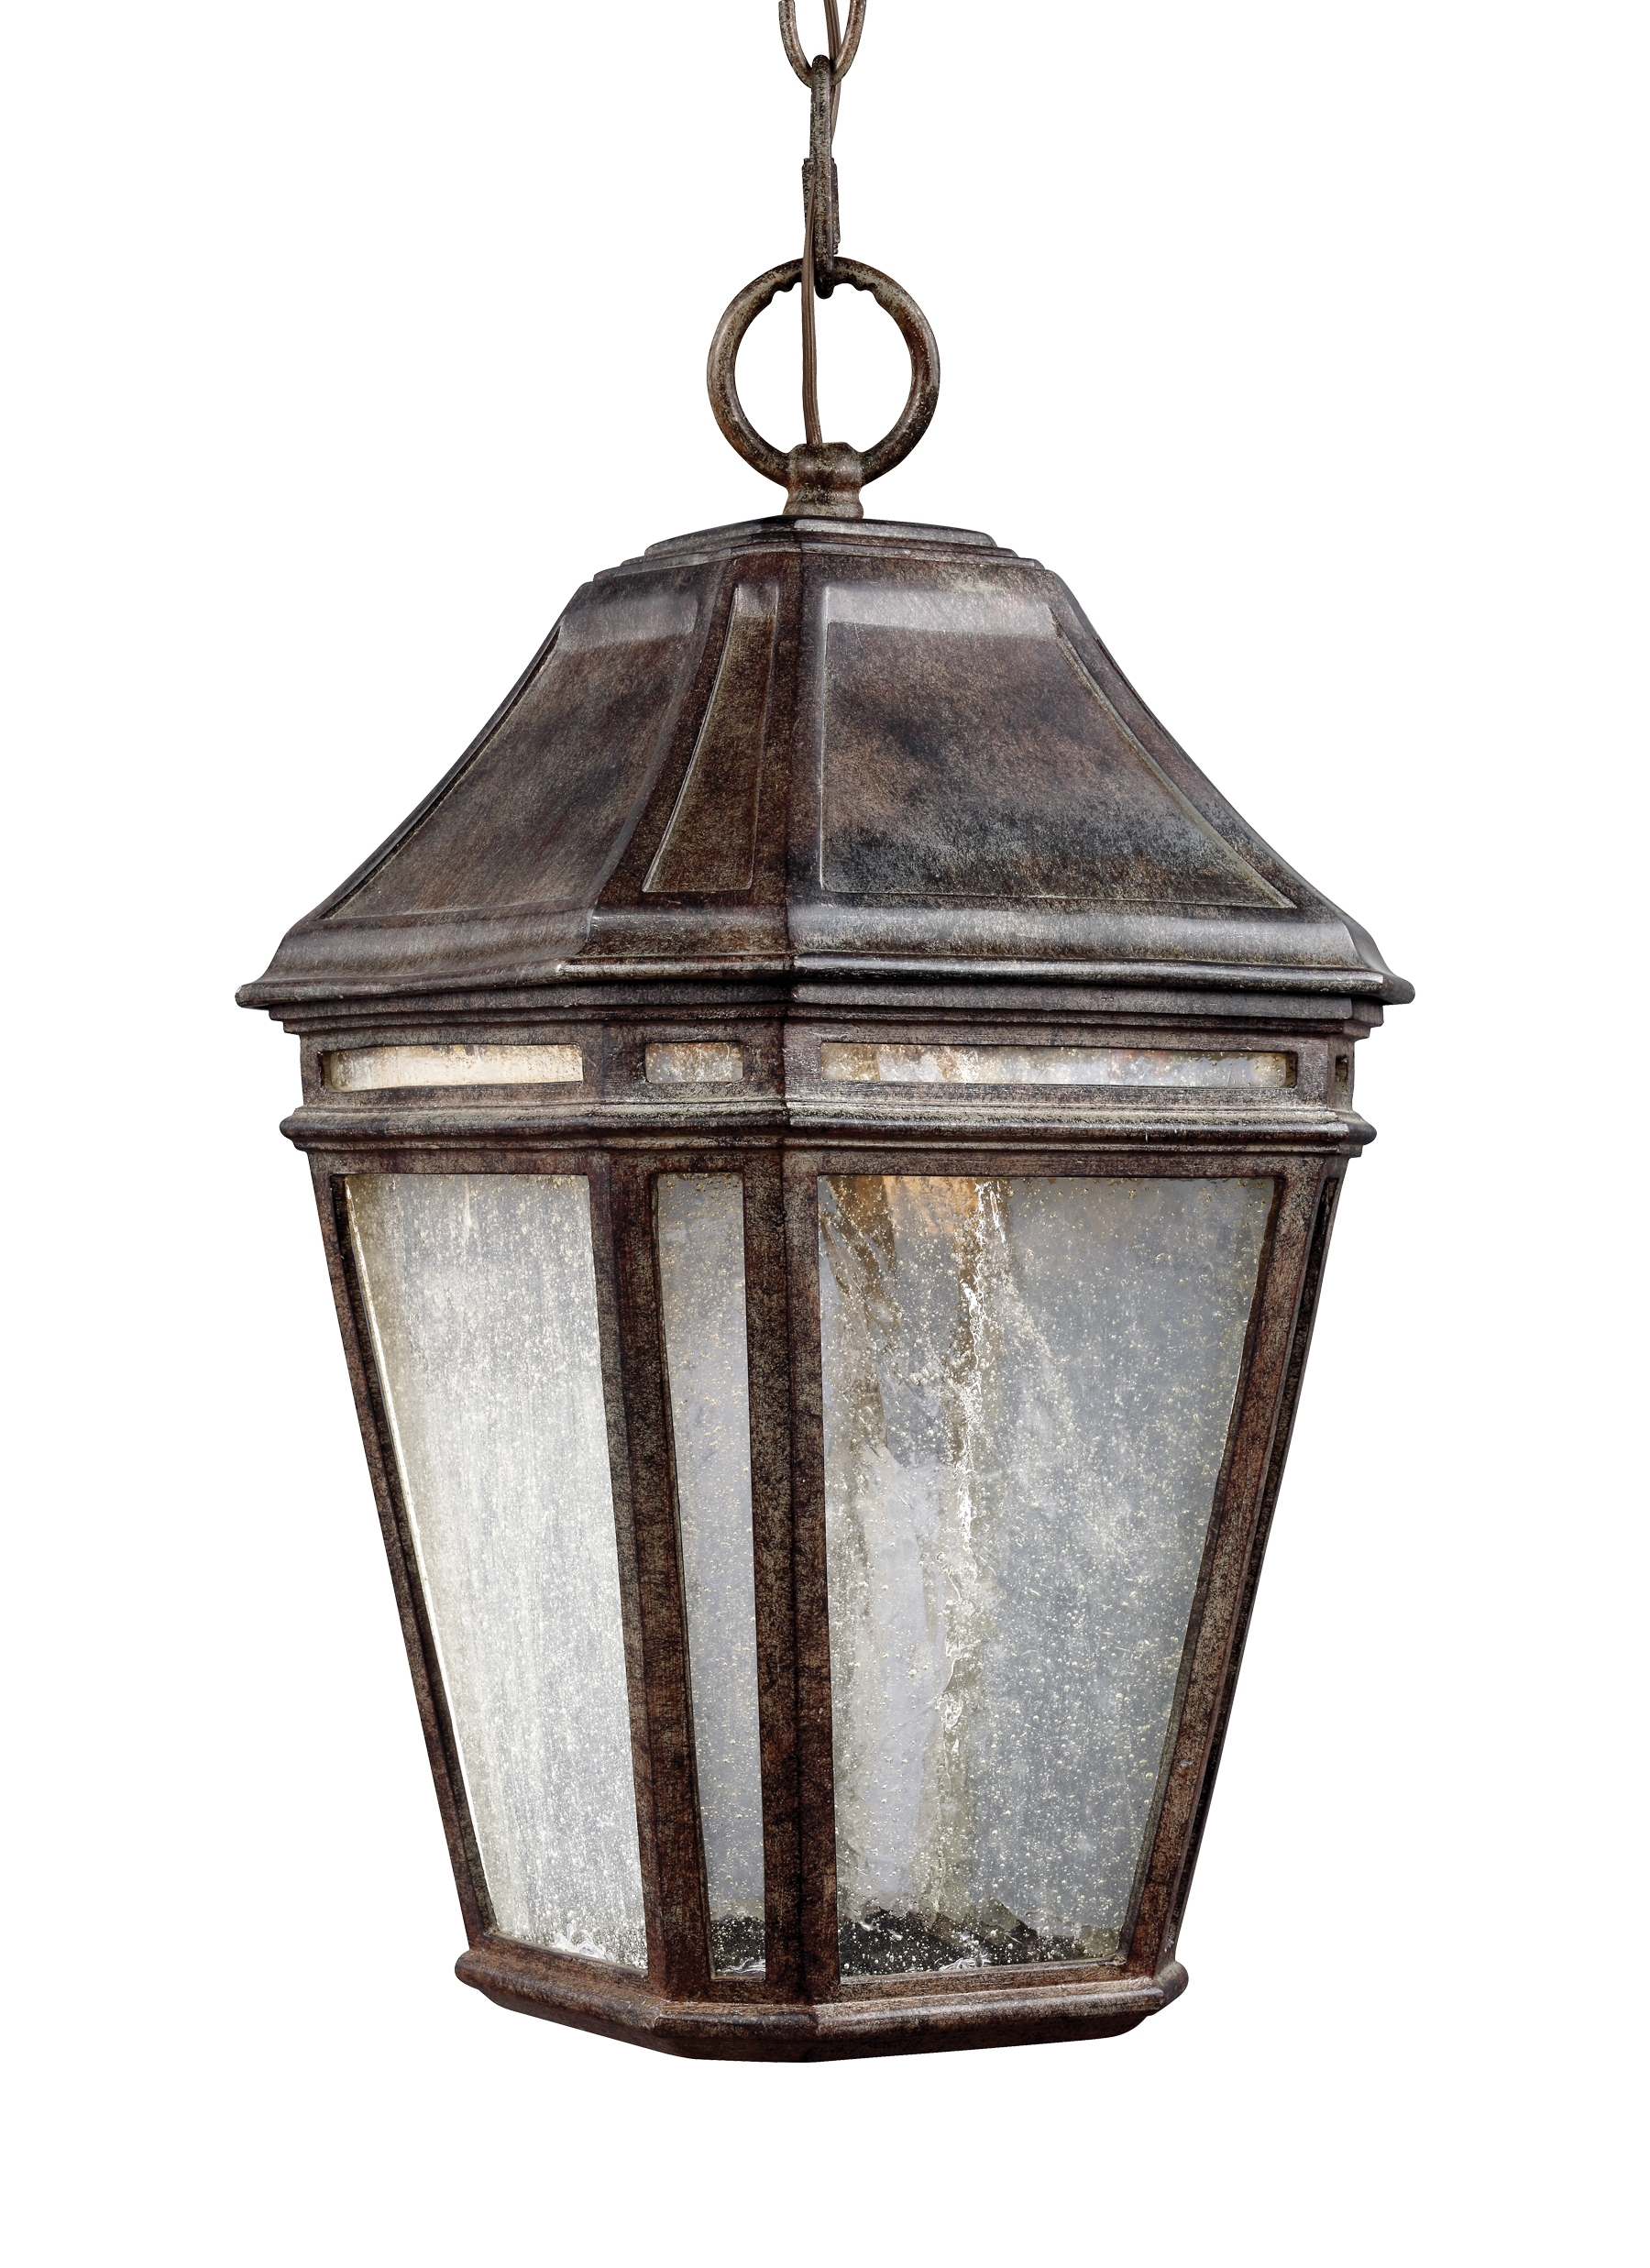 Led Outdoor Hanging Lanterns Pertaining To Recent Ol11309wct Led,led Outdoor Pendant,weathered Chestnut (View 9 of 20)